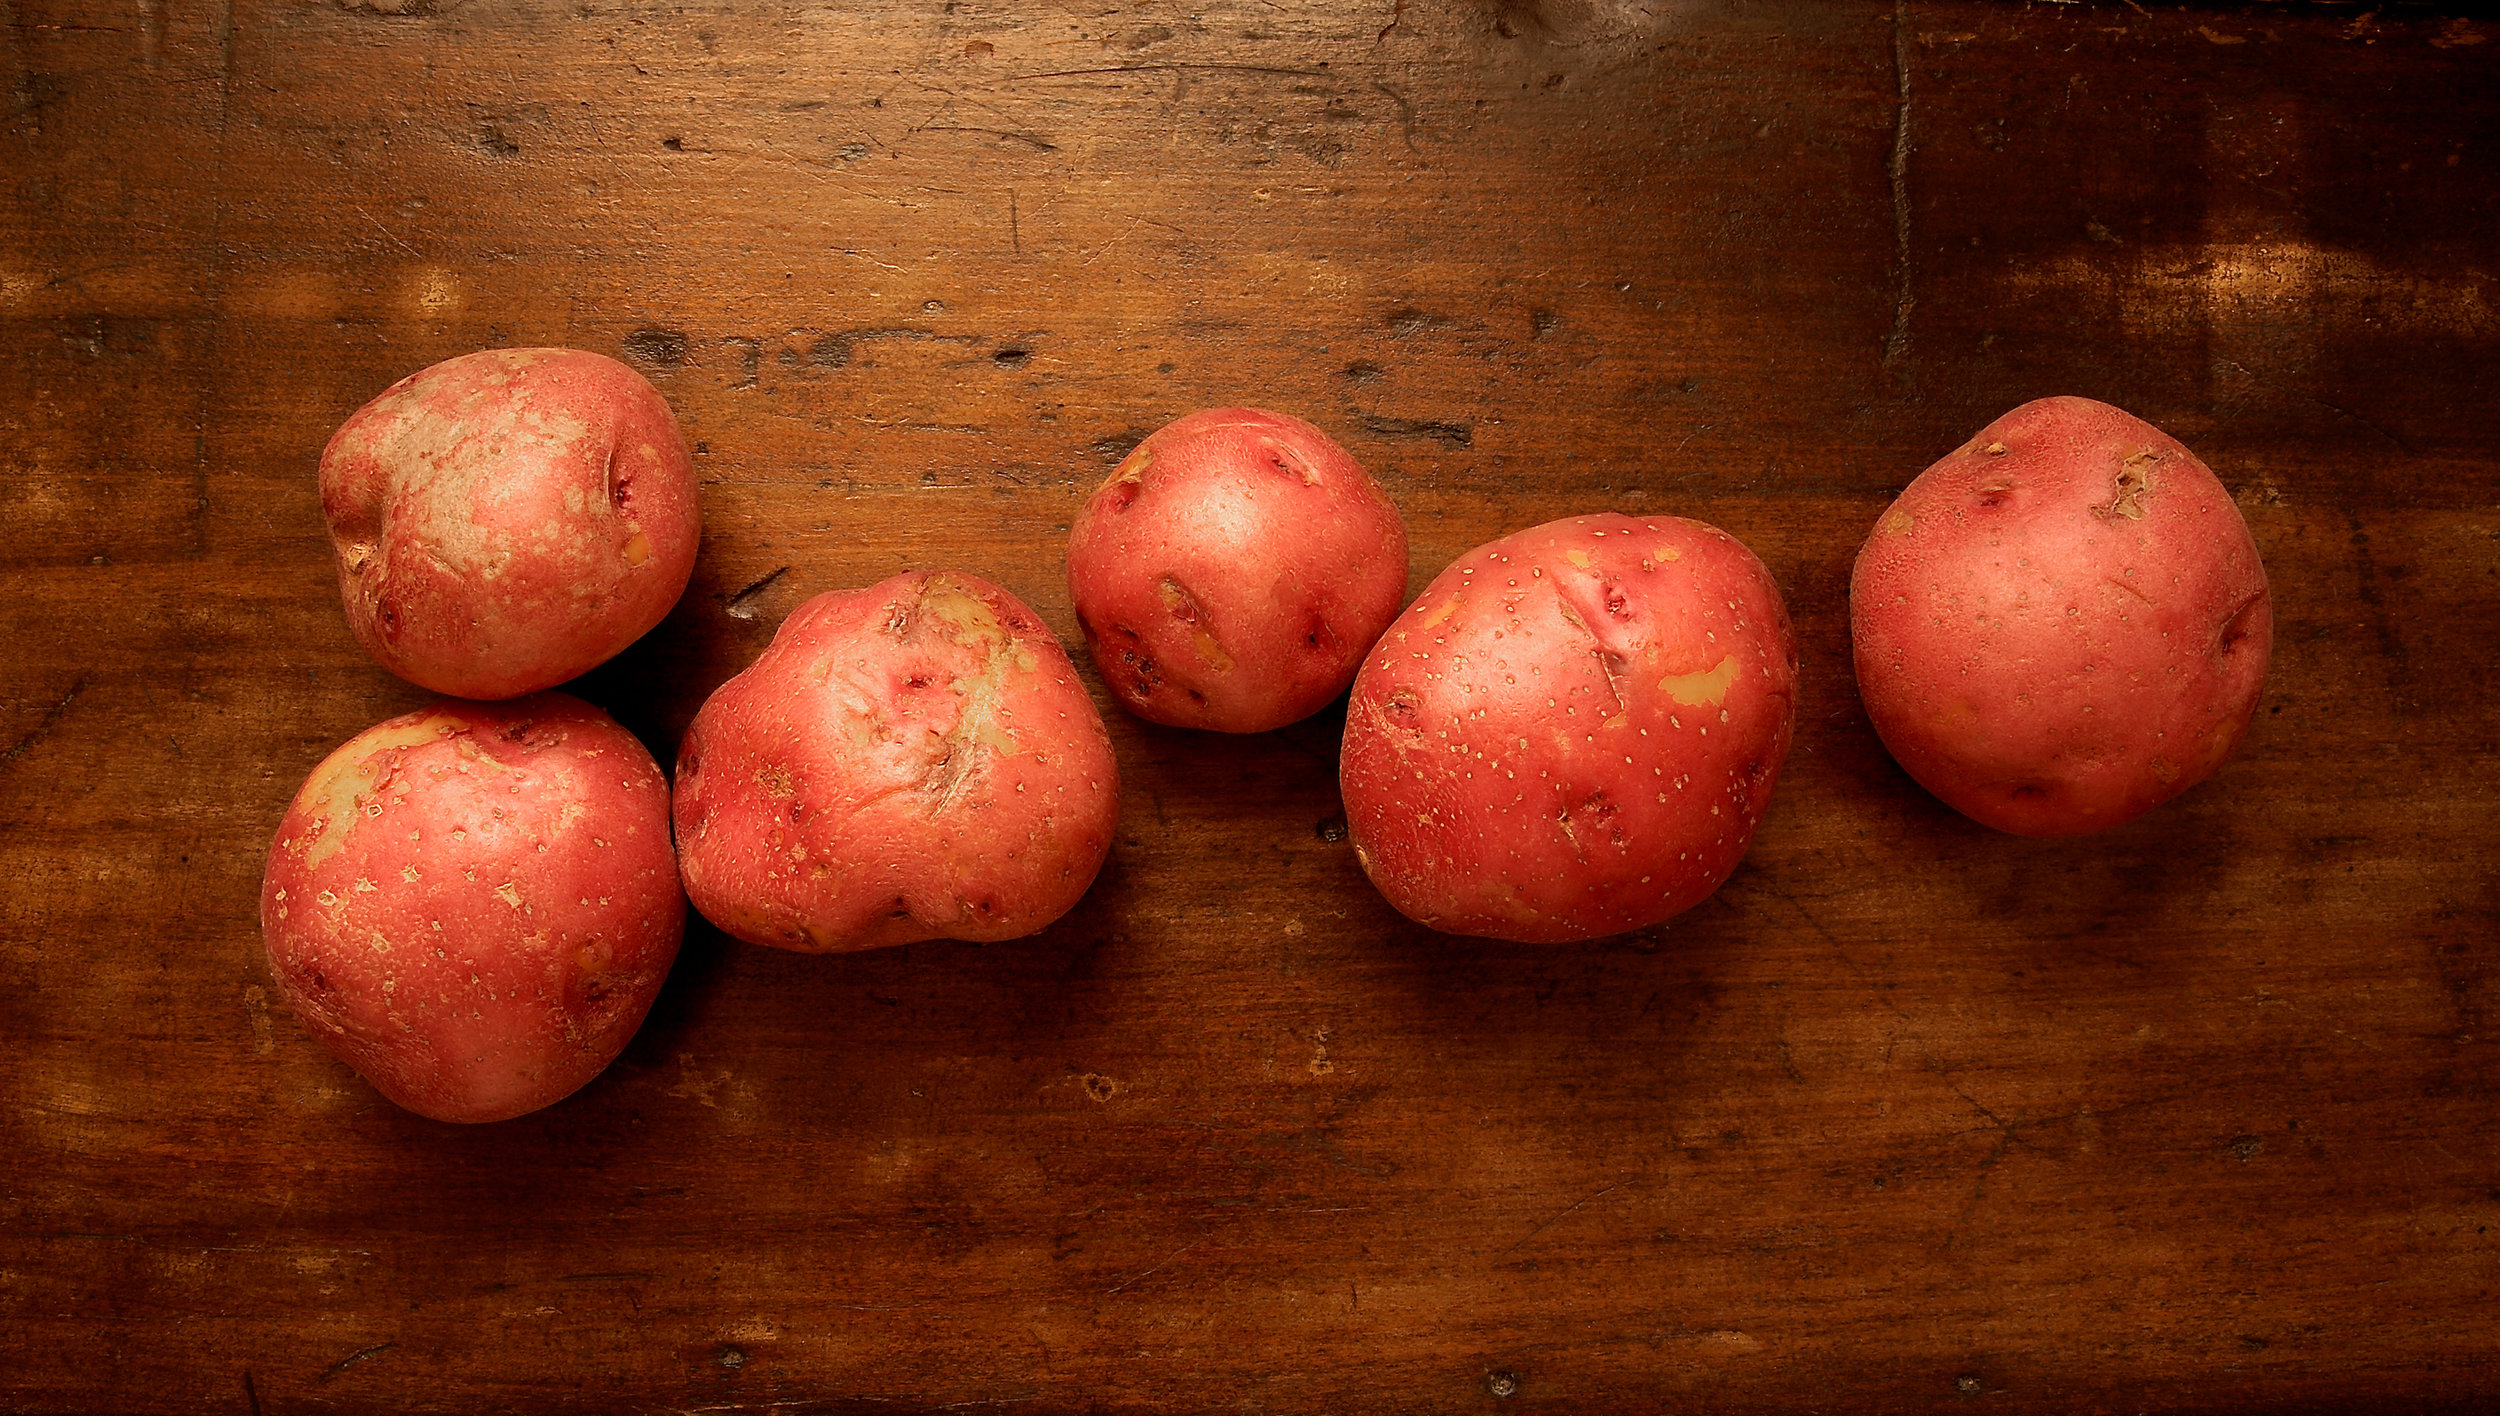 POTATO-ORGANIC-ROOT-VEGETABLE-ON-WOOD-©-JONATHAN-R.-BECKERMAN-PHOTOGRAPHY.jpg